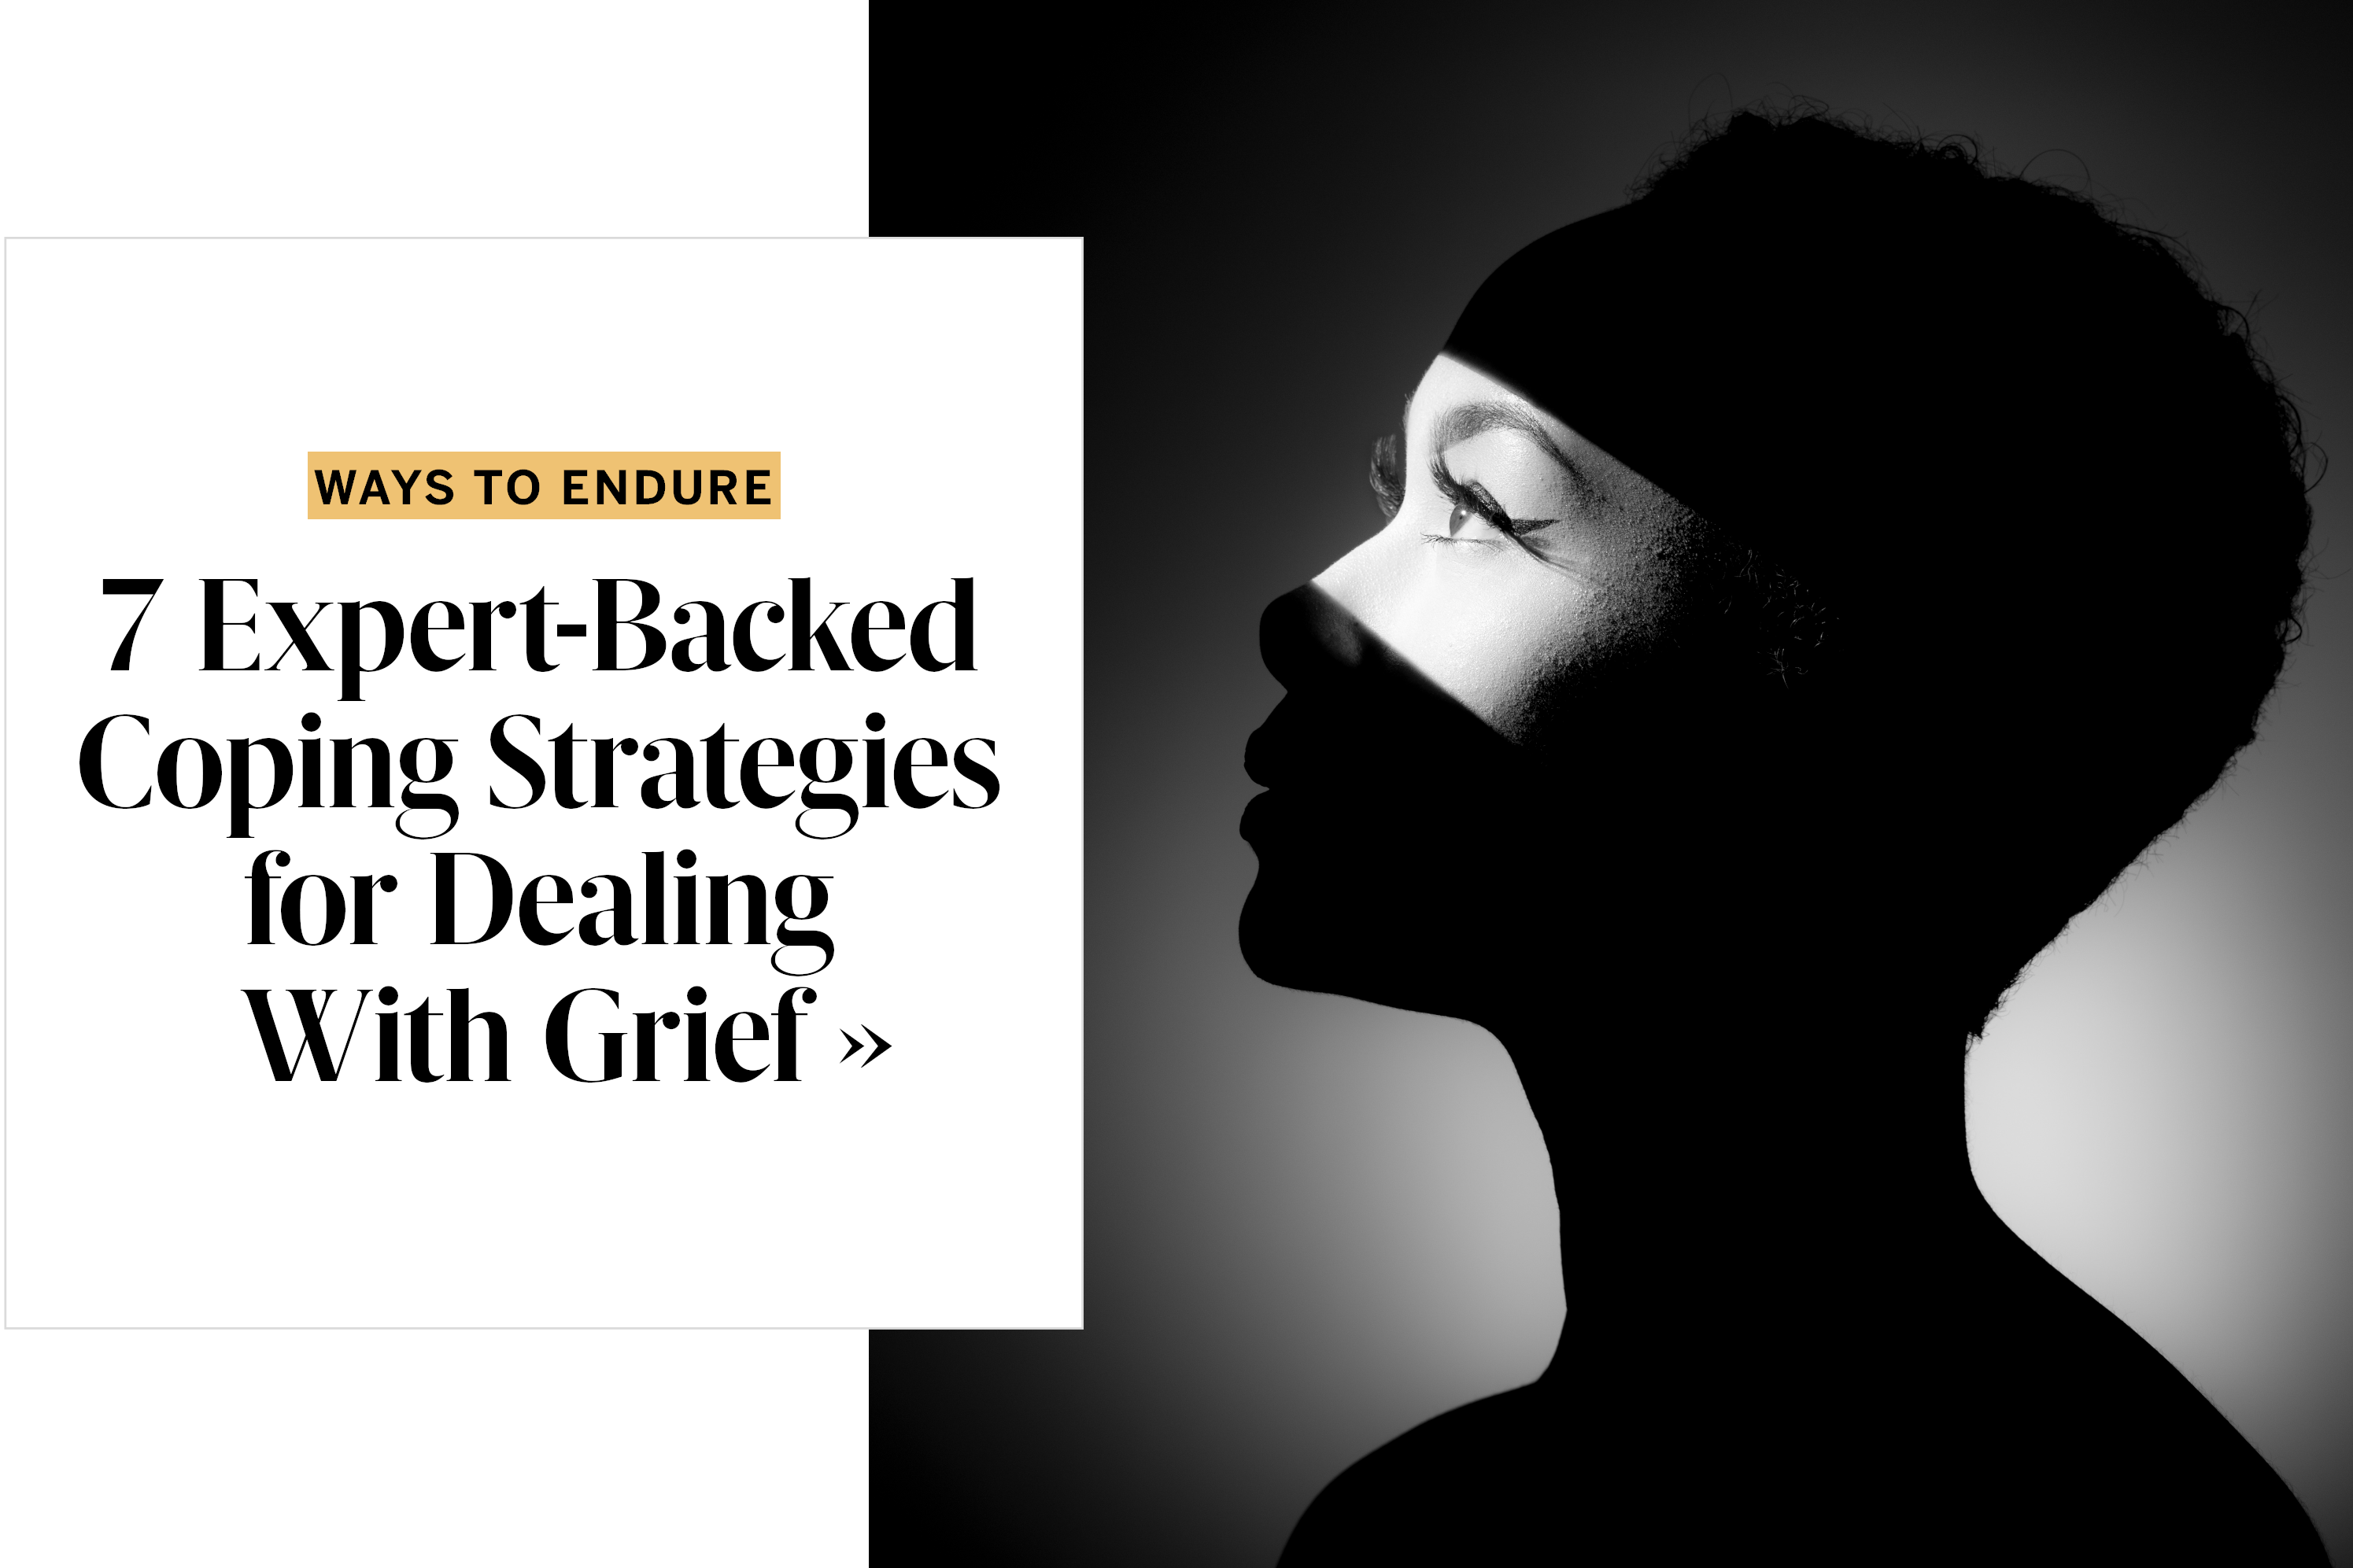 Dealing With Grief: 7 Coping Strategies, According to Experts